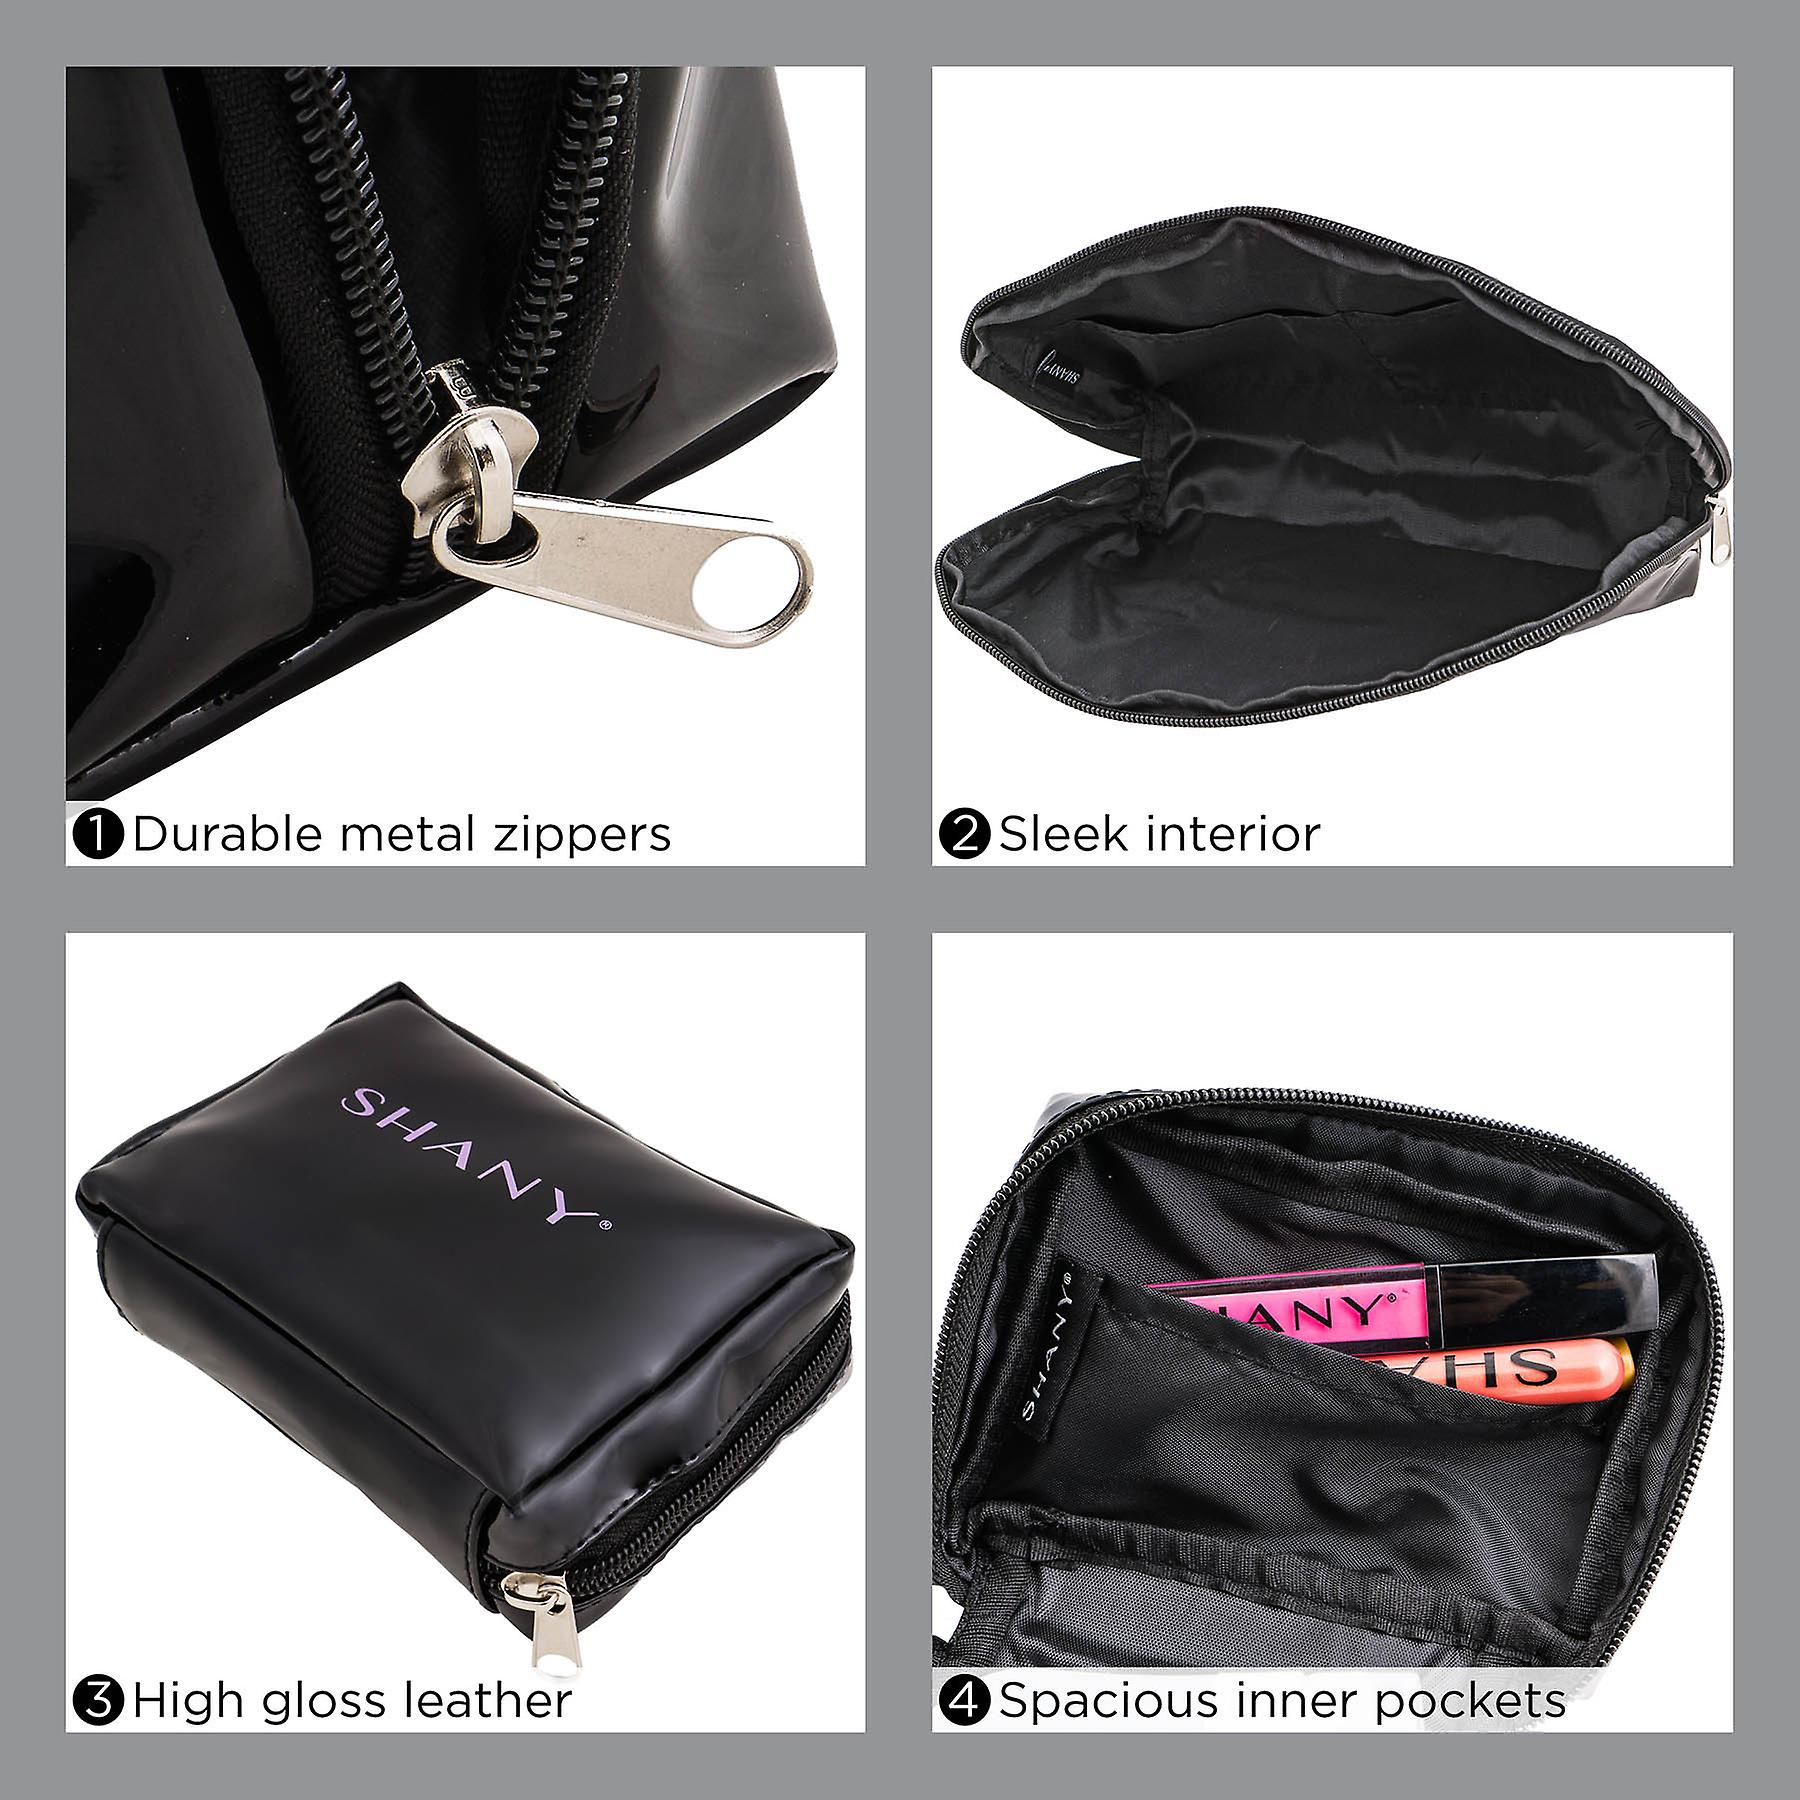 SHANY Black Faux Patent Leather Cosmetic Clutch Set - Three Portable and Waterproof Toiletry Bags with Internal Pockets and Black Nylon Interior - 3 PC